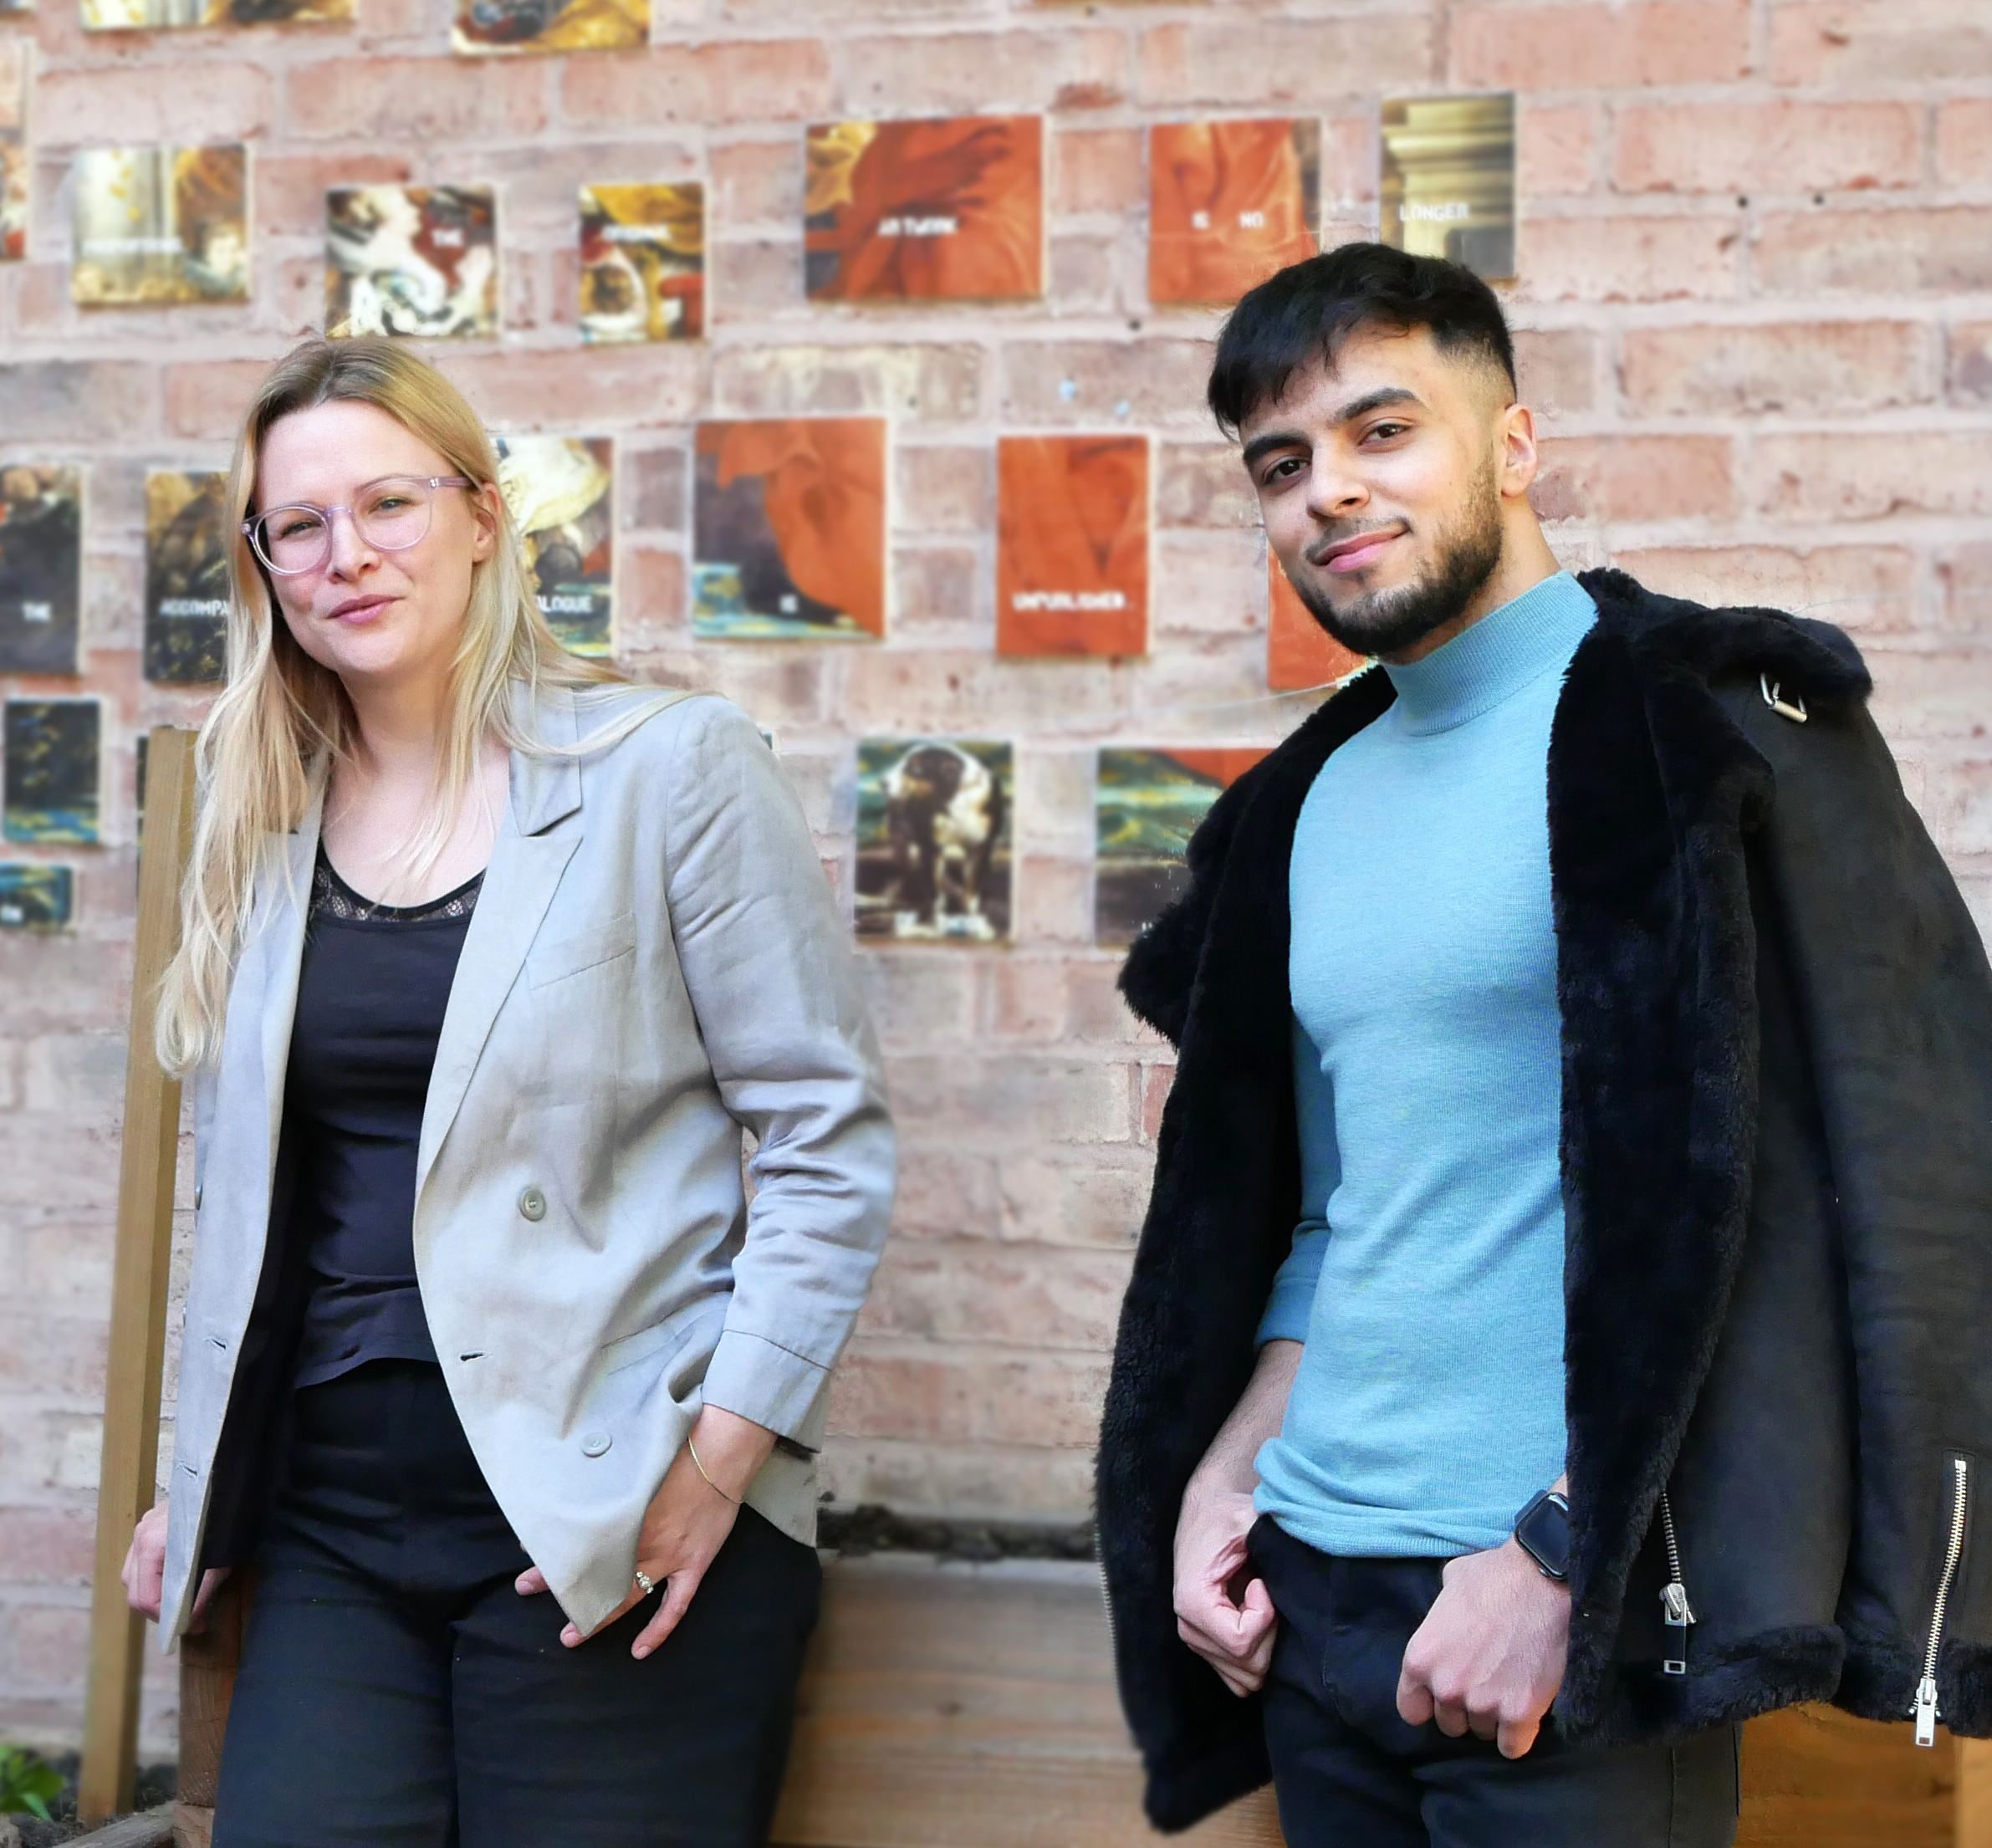 LEICESTER DIGITAL AGENCY APPOINTS TWO NEW STARTERS